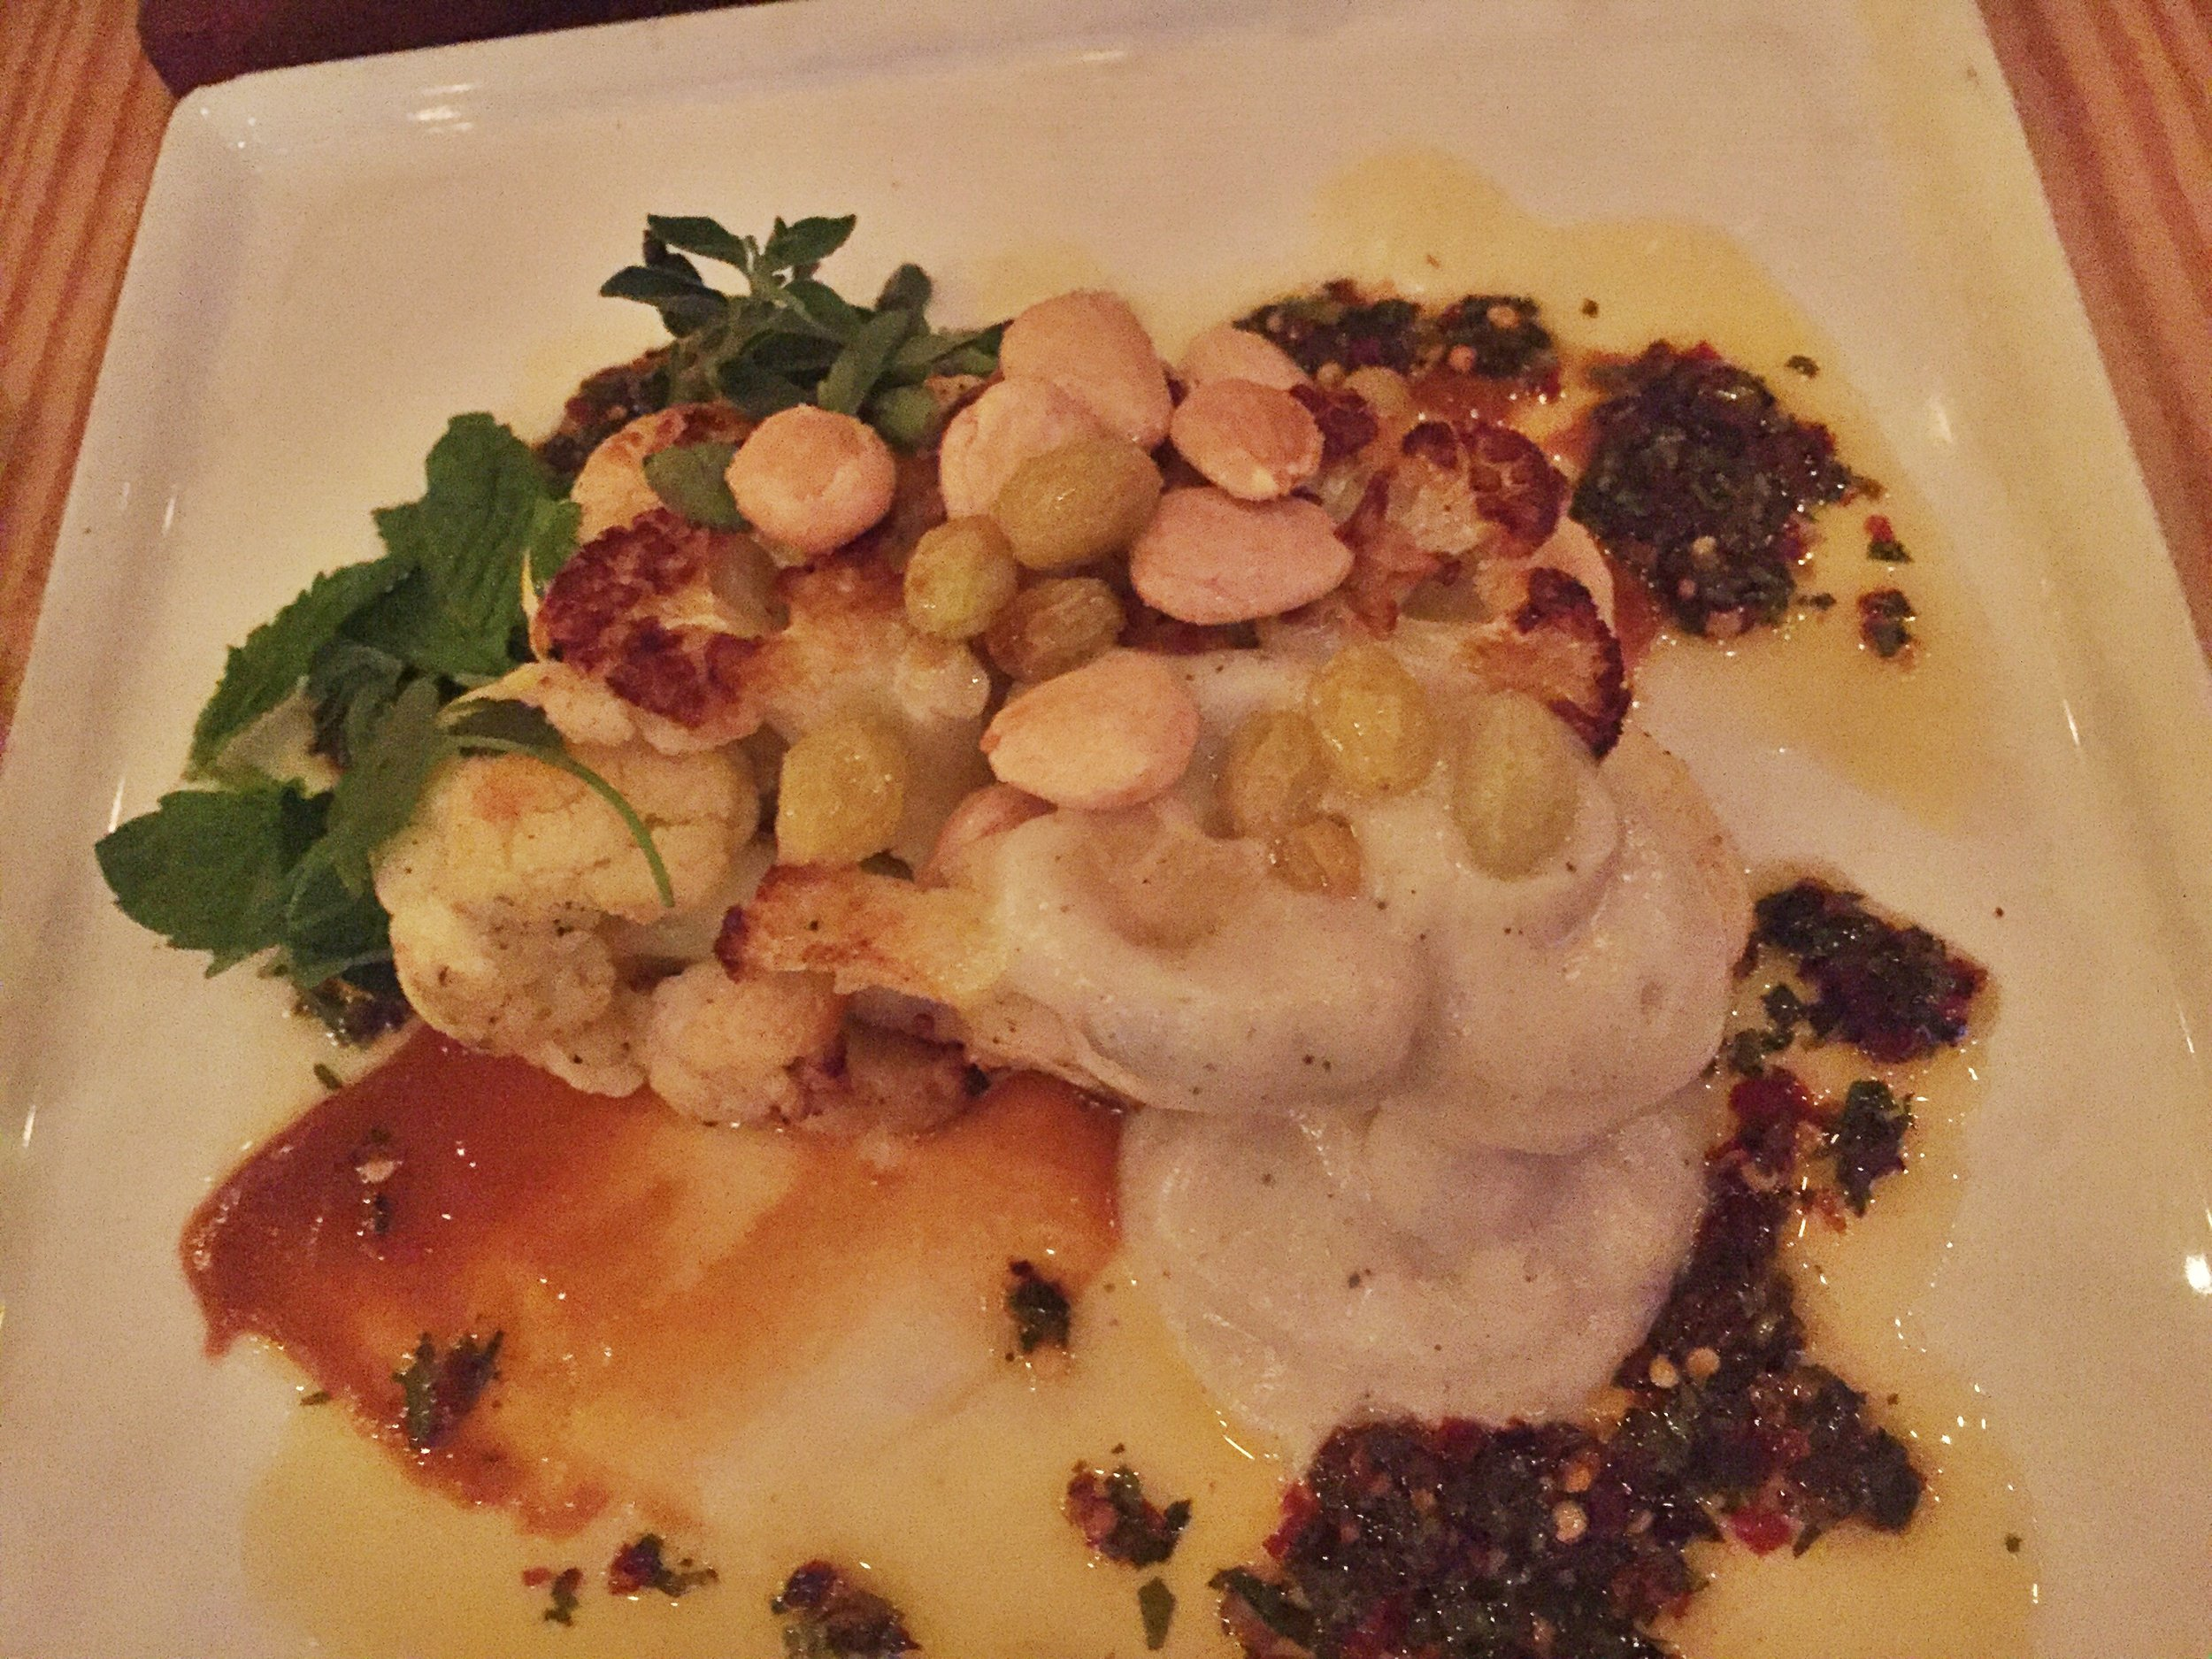 I know this picture quality is AWFUL, but this dish was so flavorful! It was a vegetetable side with cauliflower, cauliflower puree, marcona almonds, golden raisins, and some really delicious sauces. I LOVED it!